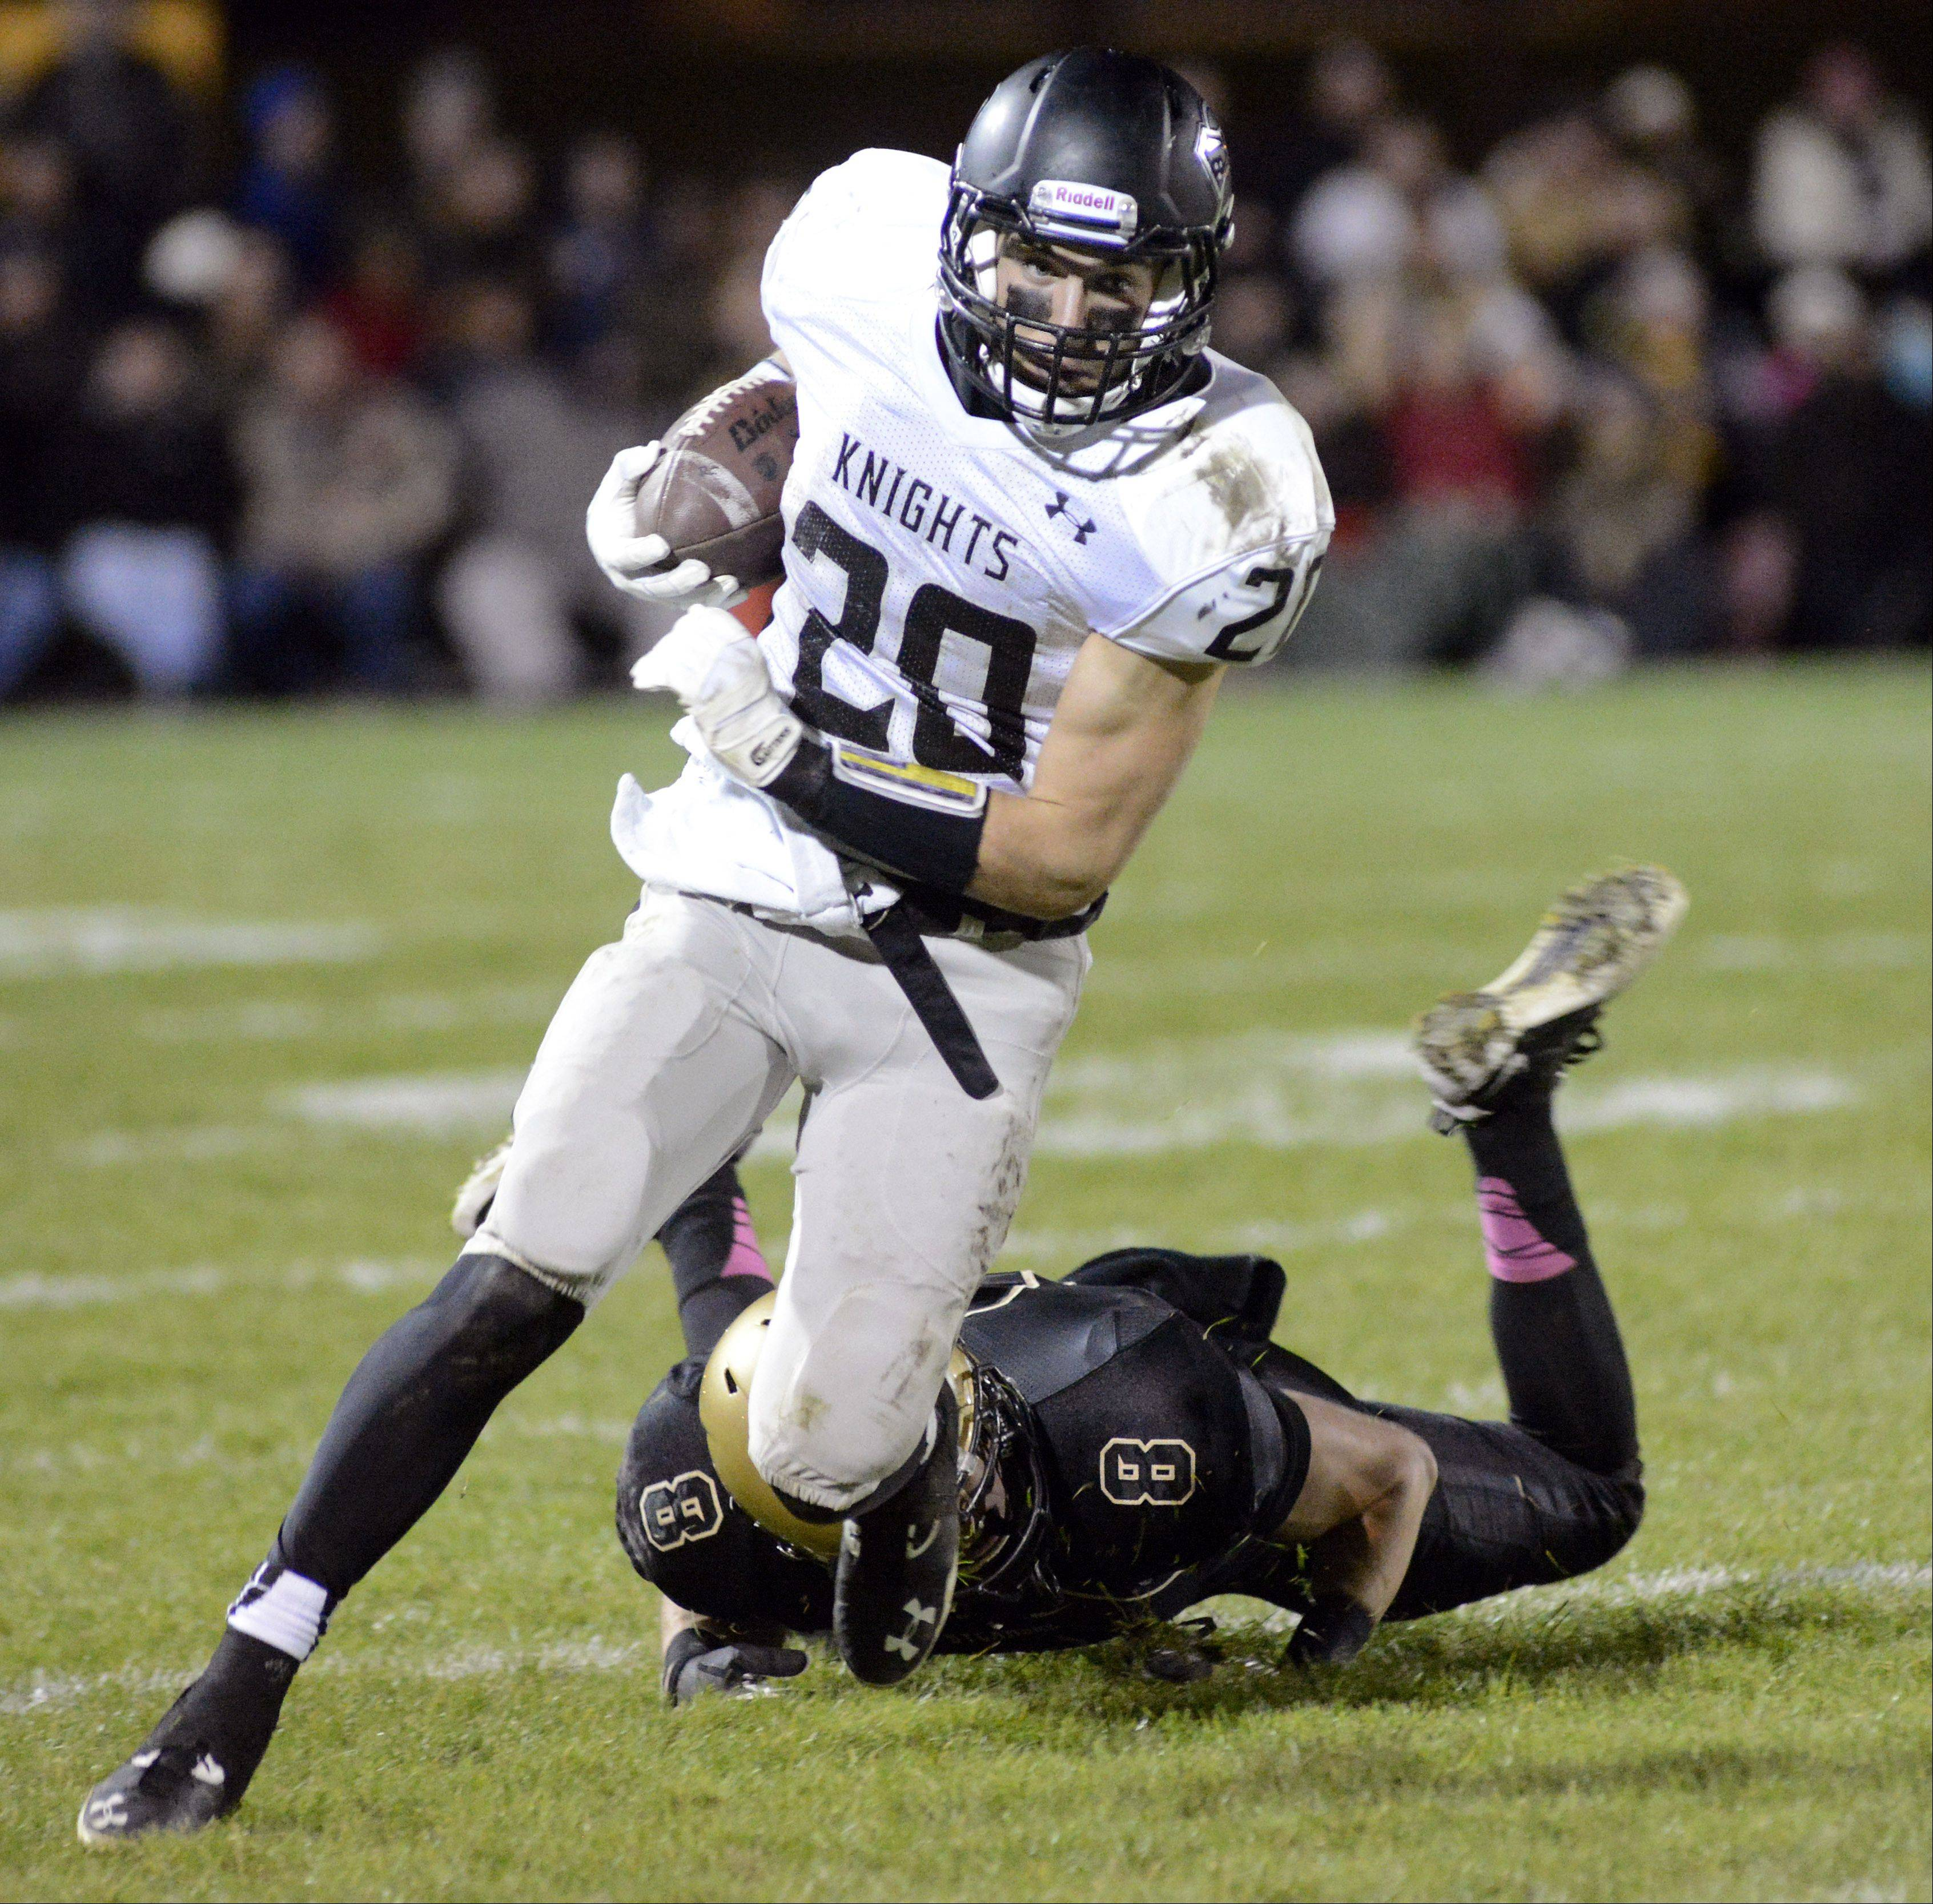 Kaneland's Dylan Nauert shakes off Sycamore's Ben Niemann in the second quarter on Friday, October 18.